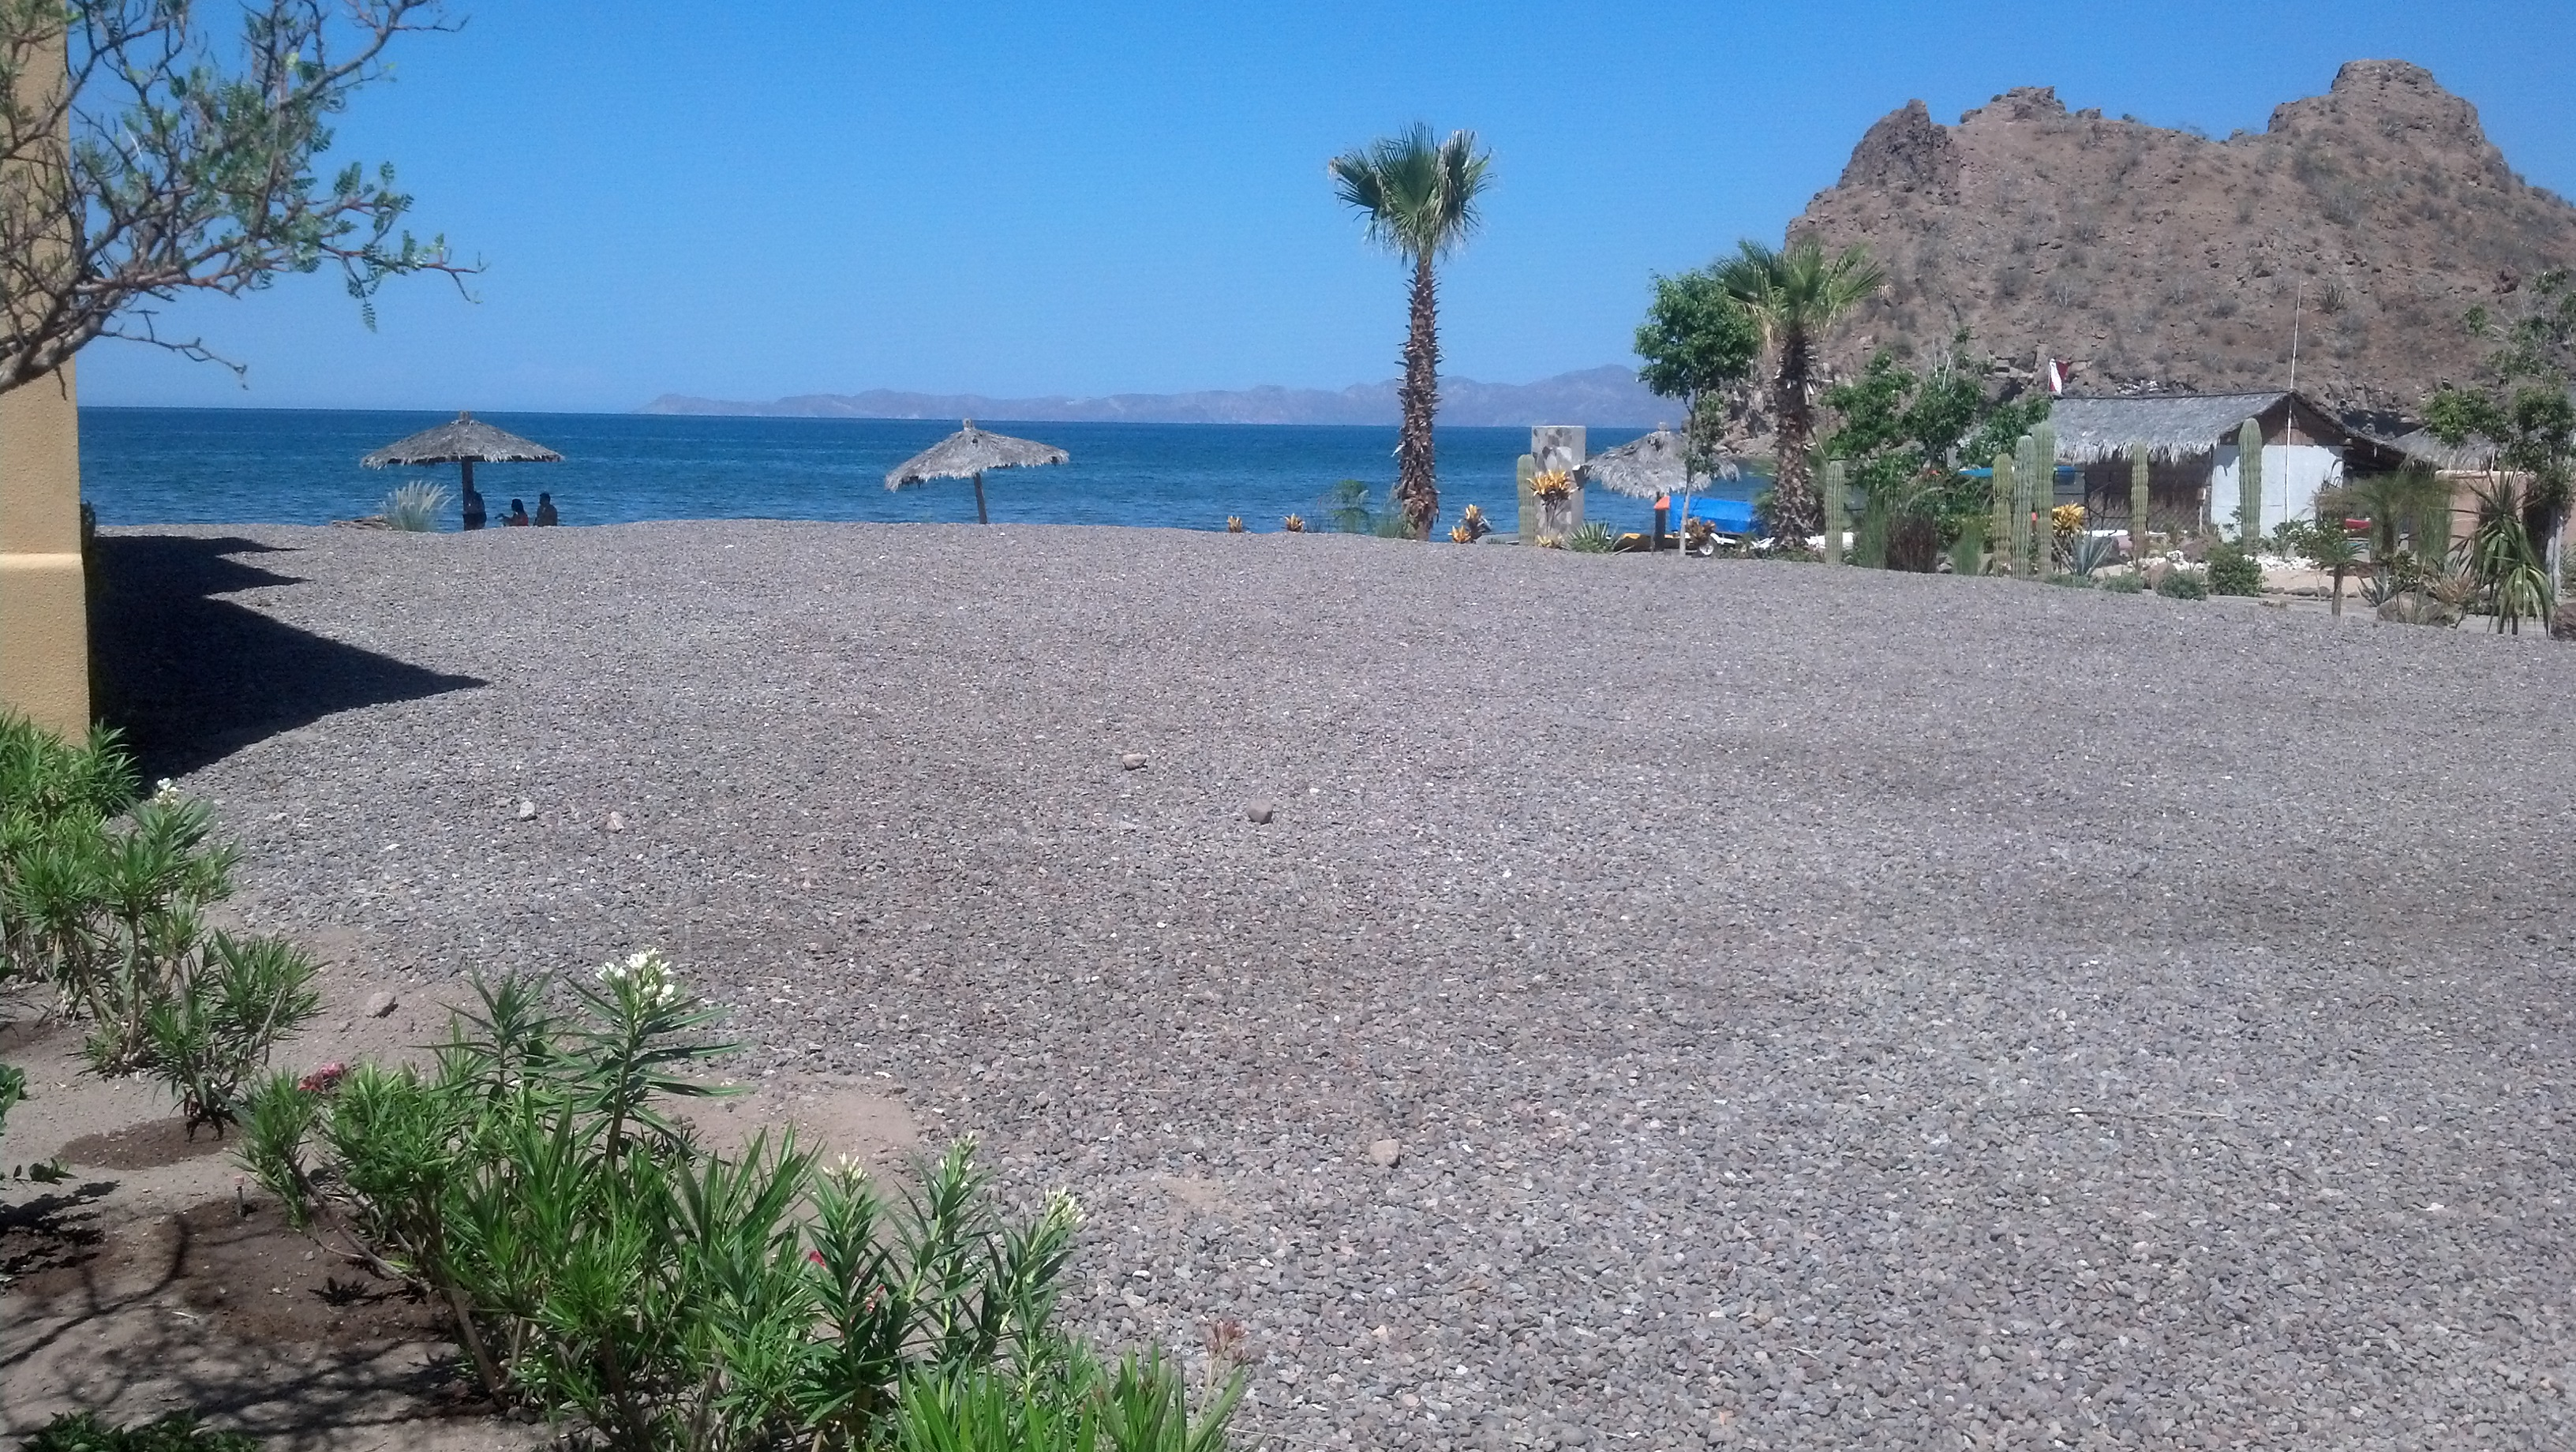 The perfect Beachfront Lot in Loreto Bay to build your dream home overlooking the Sea of Cortes and the islands beyond!